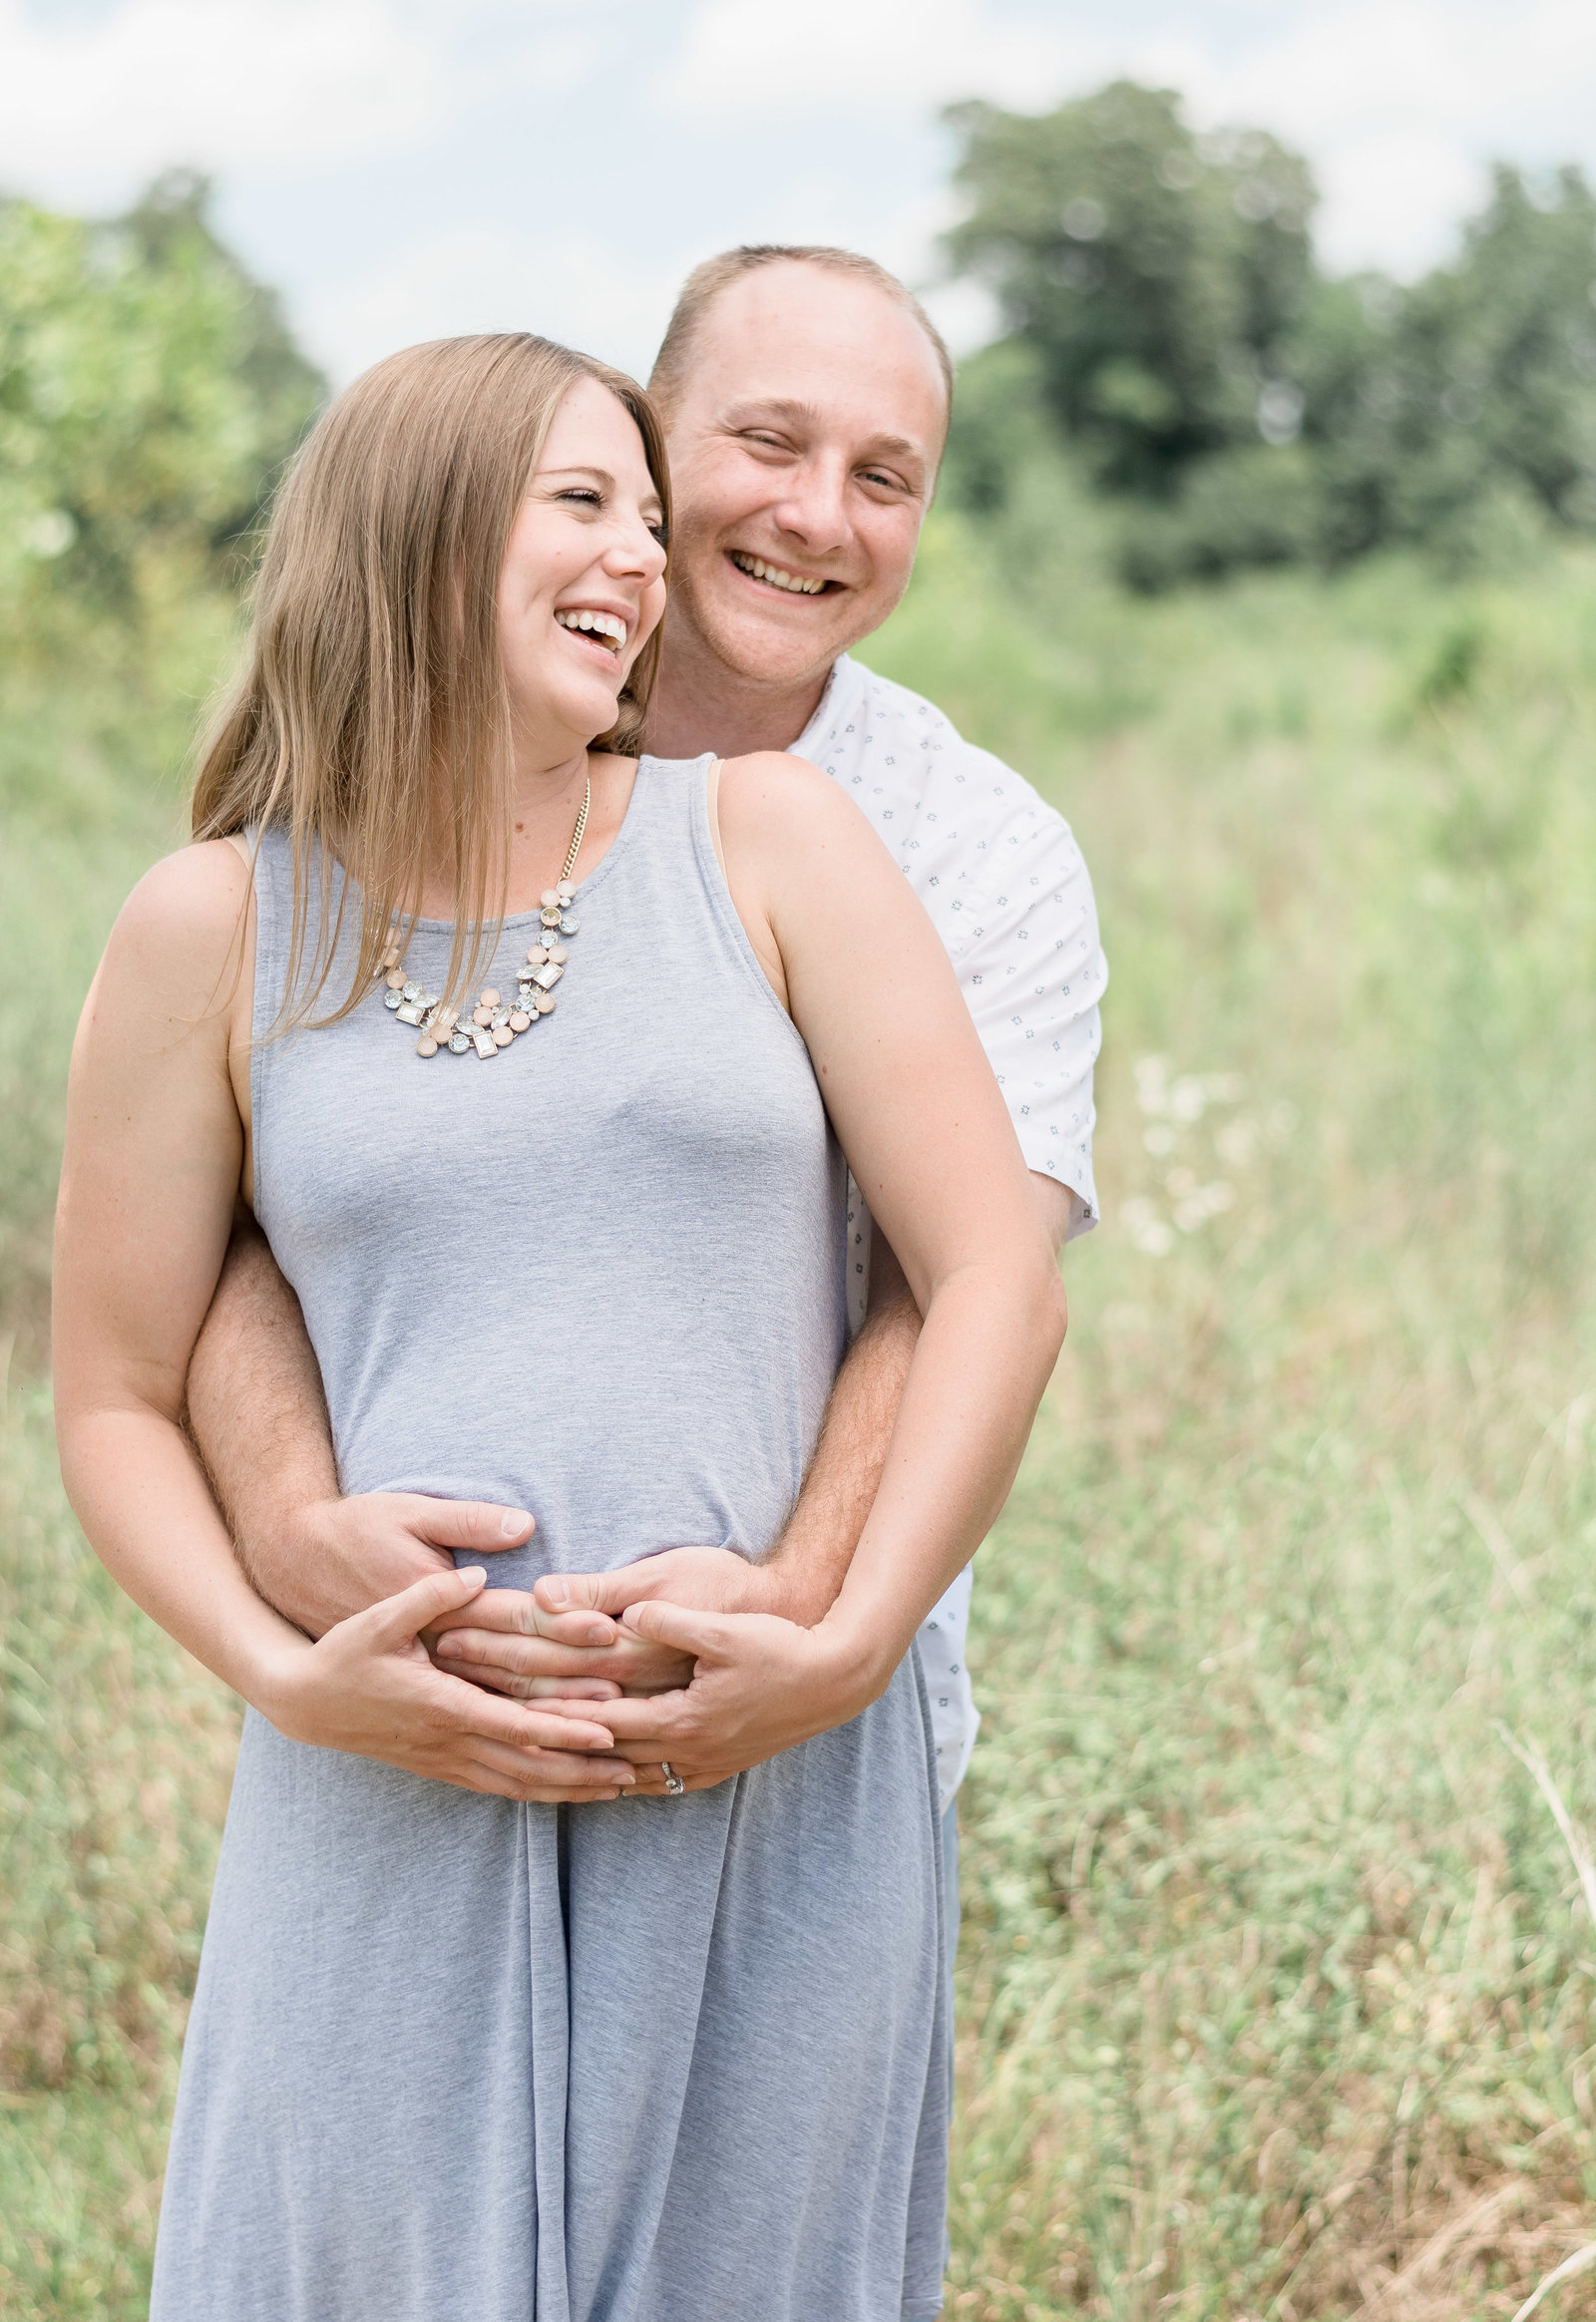 Charlotte Maternity photographer shot of couple on beach cute smiling in field in uptown charlotte